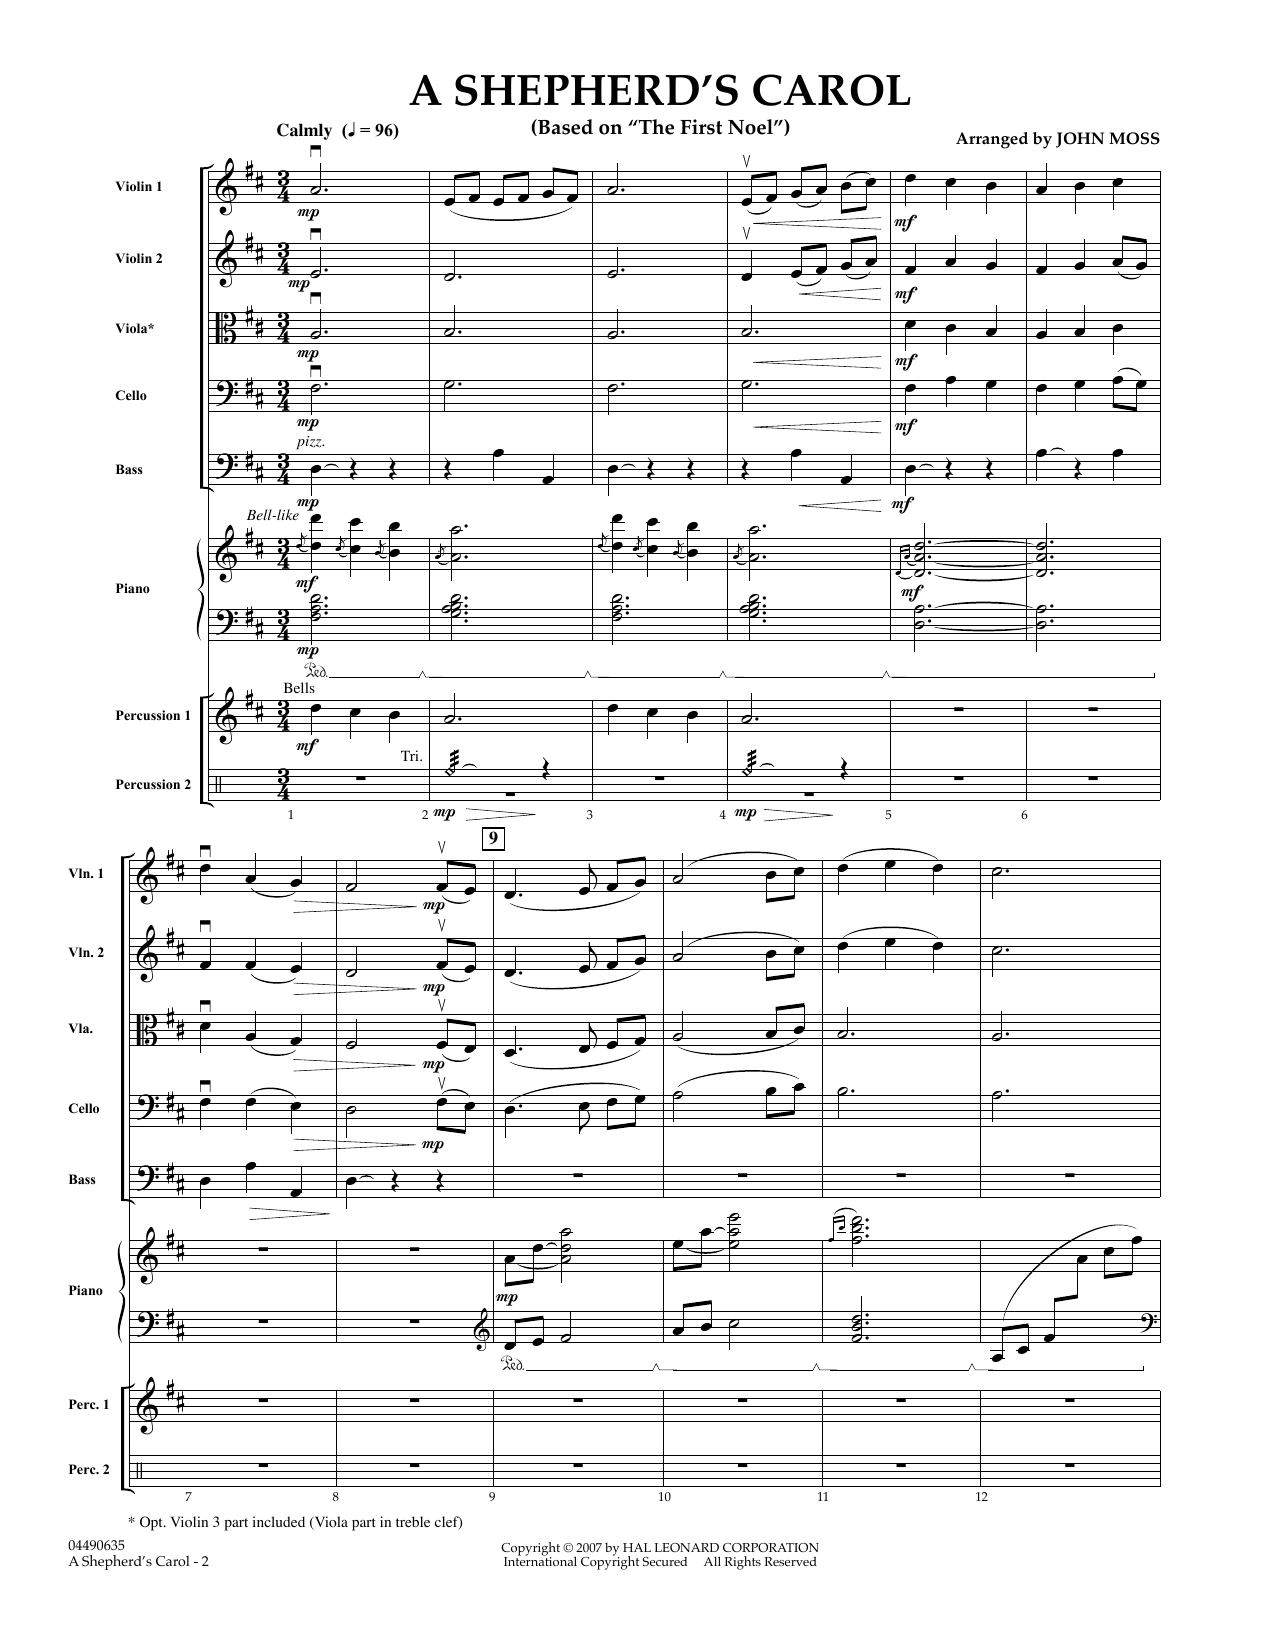 A Shepherd's Carol (COMPLETE) sheet music for orchestra by John Moss. Score Image Preview.